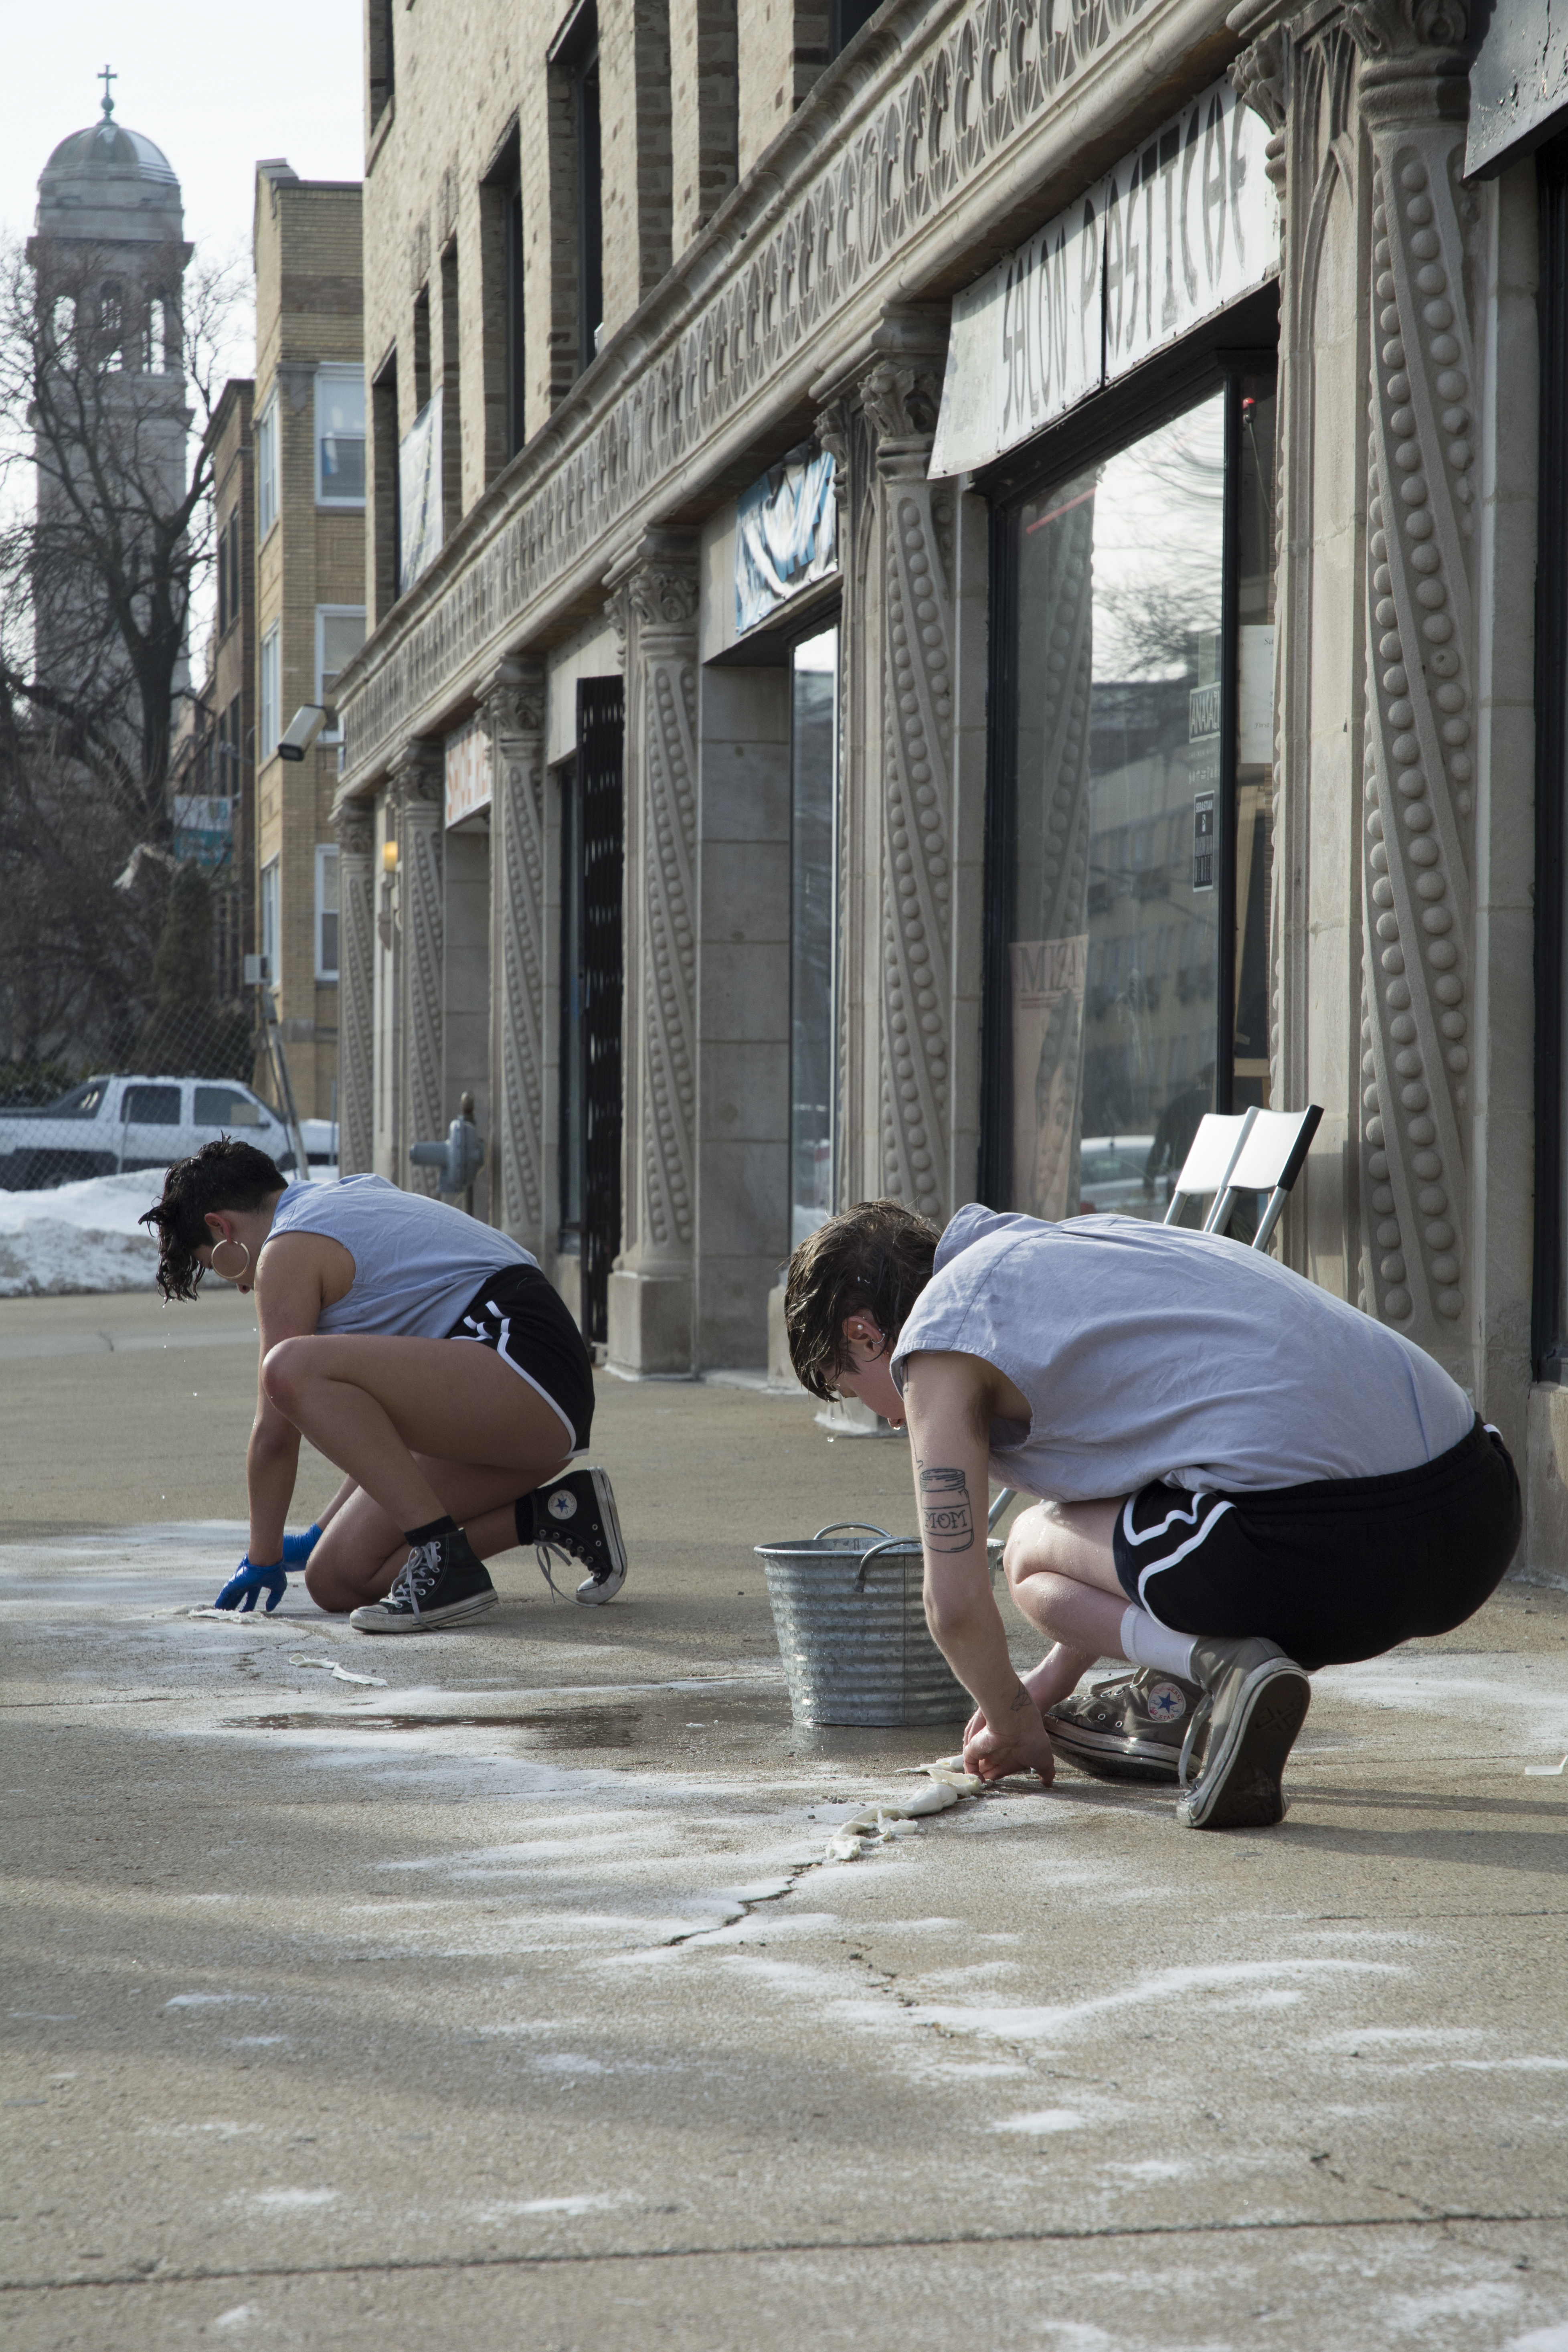 This is a still image of a performance taking place on the sidewalk outside the gallery. Two performers in matching outfits (grey-blue sleeveless shirt, black athletic shorts with white stripes, Converse All-Star sneakers) crouch on the sidewalk, facing away from the camera. A metal basin and puddle of water are on the sidewalk between them, and their hair is wet and dripping. Their hands are on the ground (one performer wearing blue gloves and the other not wearing gloves), pressing or stretching a white cloth or paper onto the concrete. Behind them are storefronts, buildings, and a sizable pile of snow.